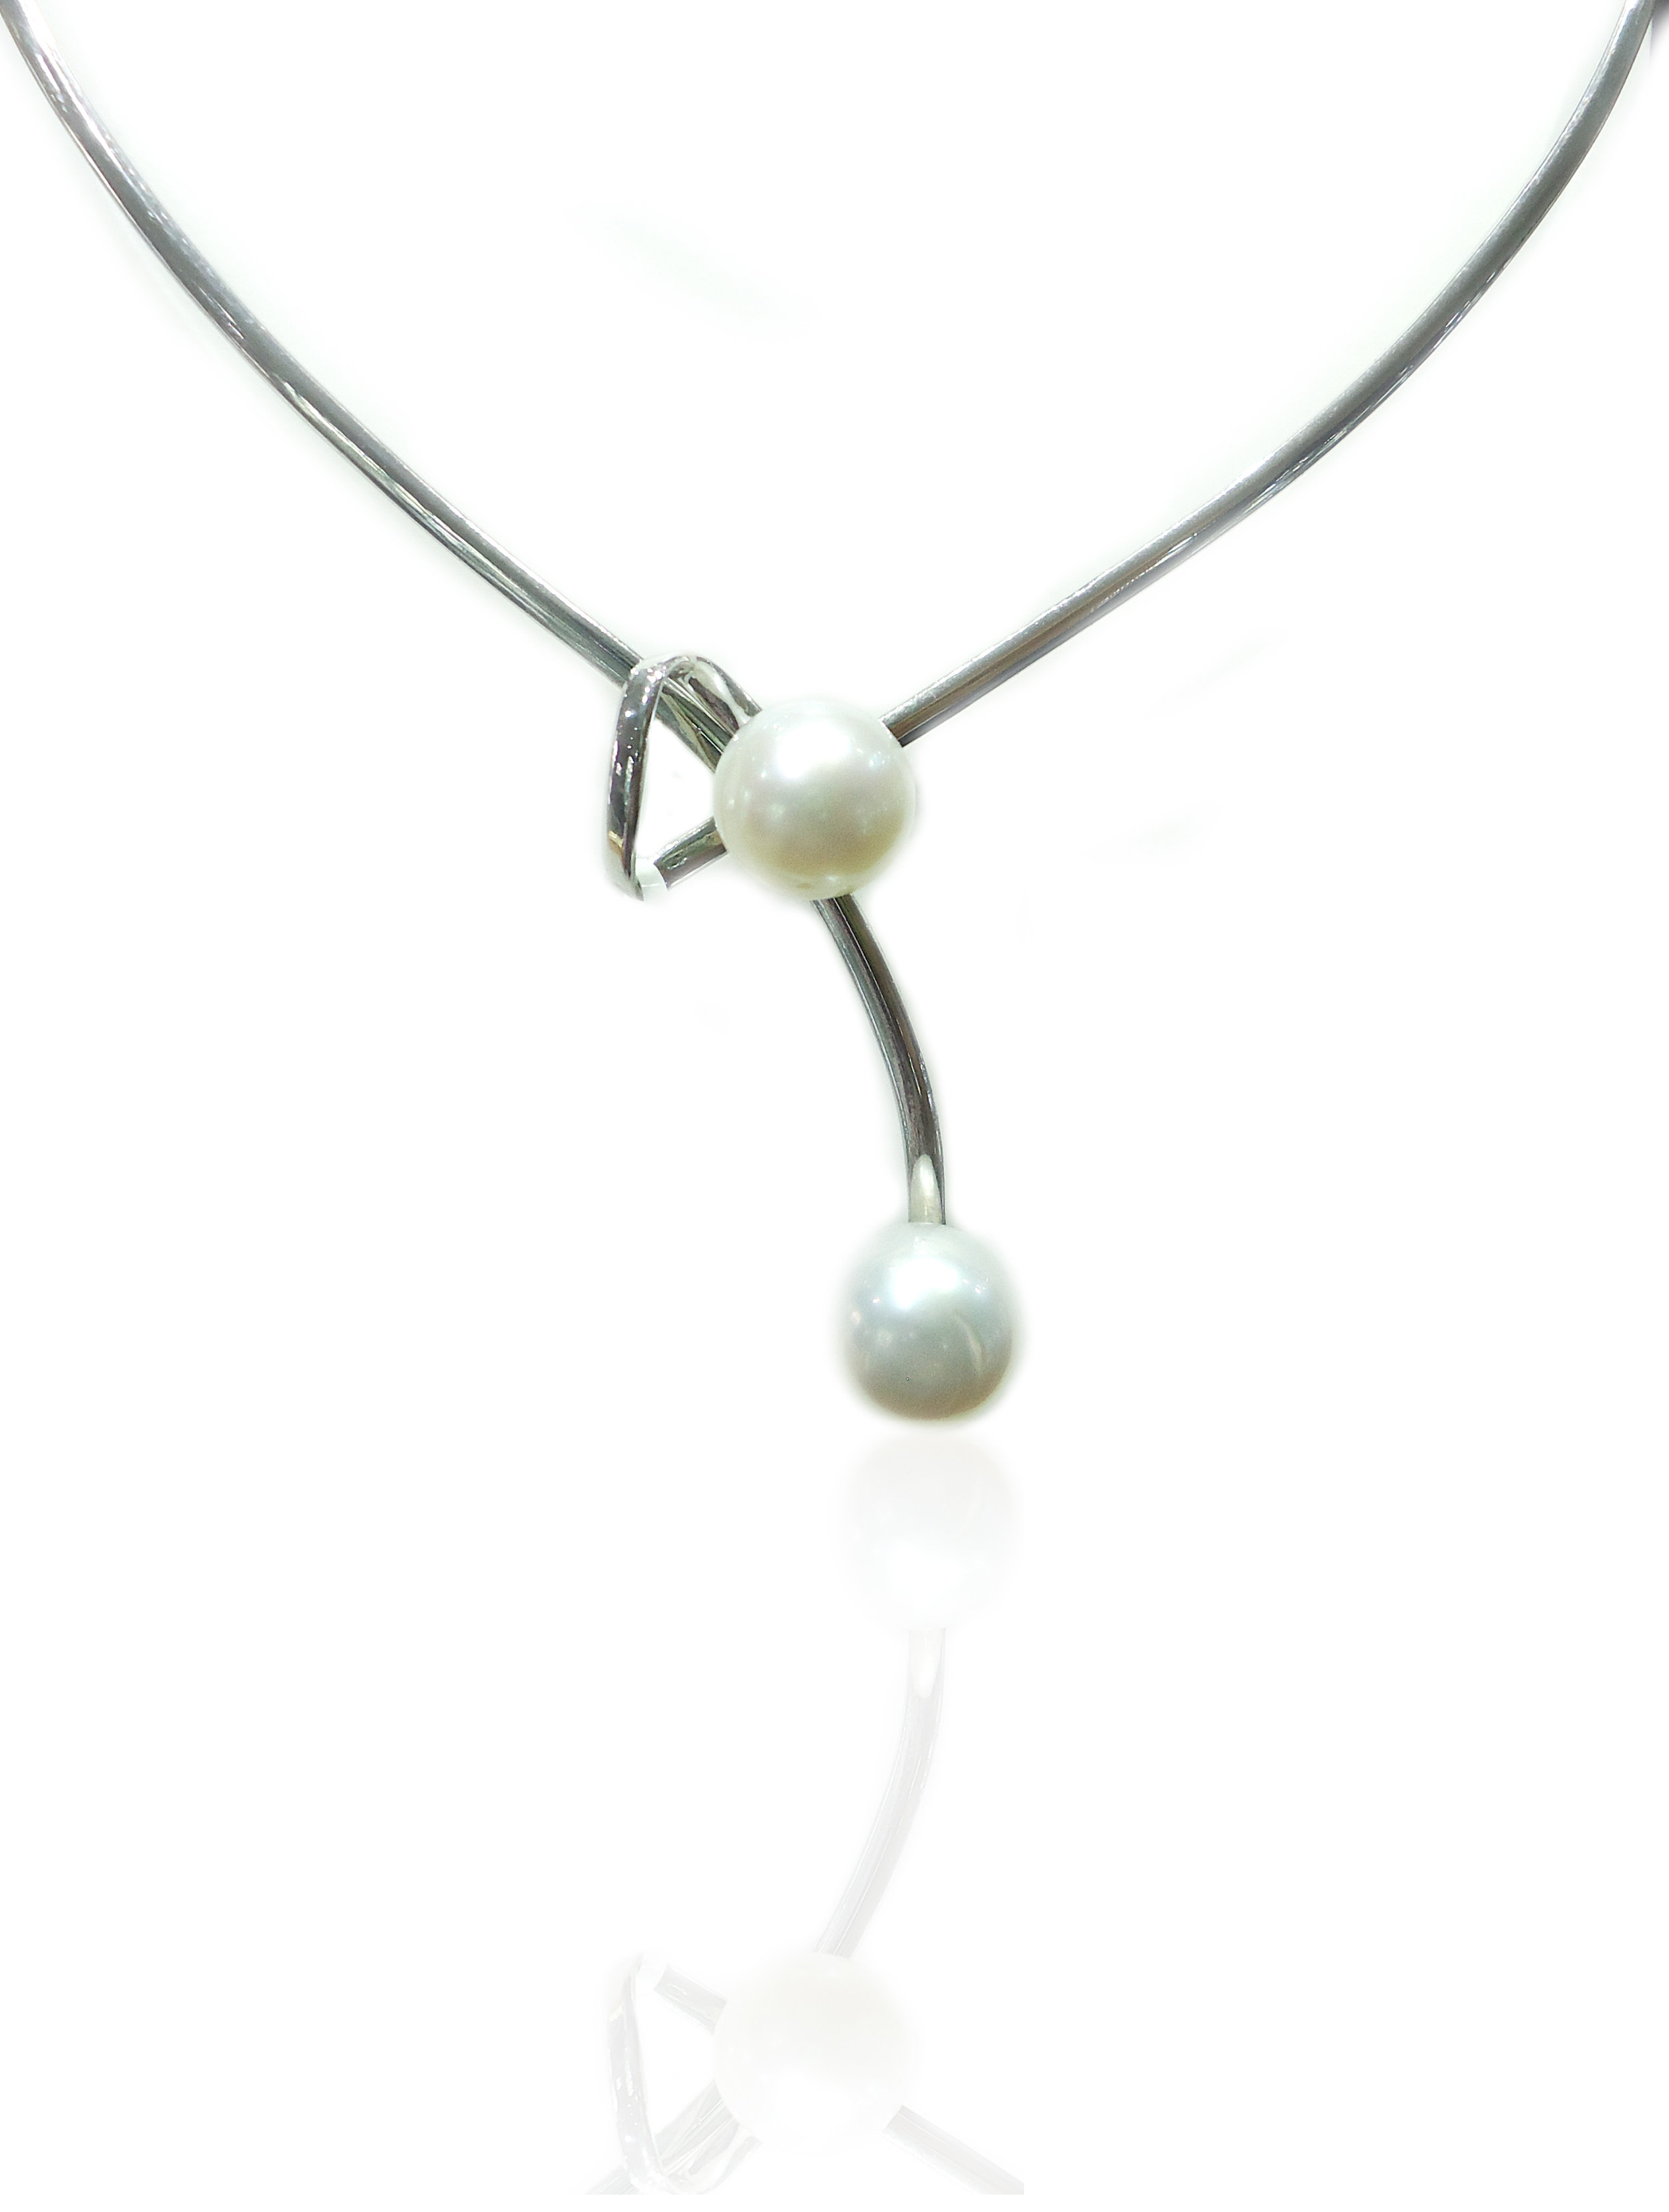 South sea pearl silver pendant!